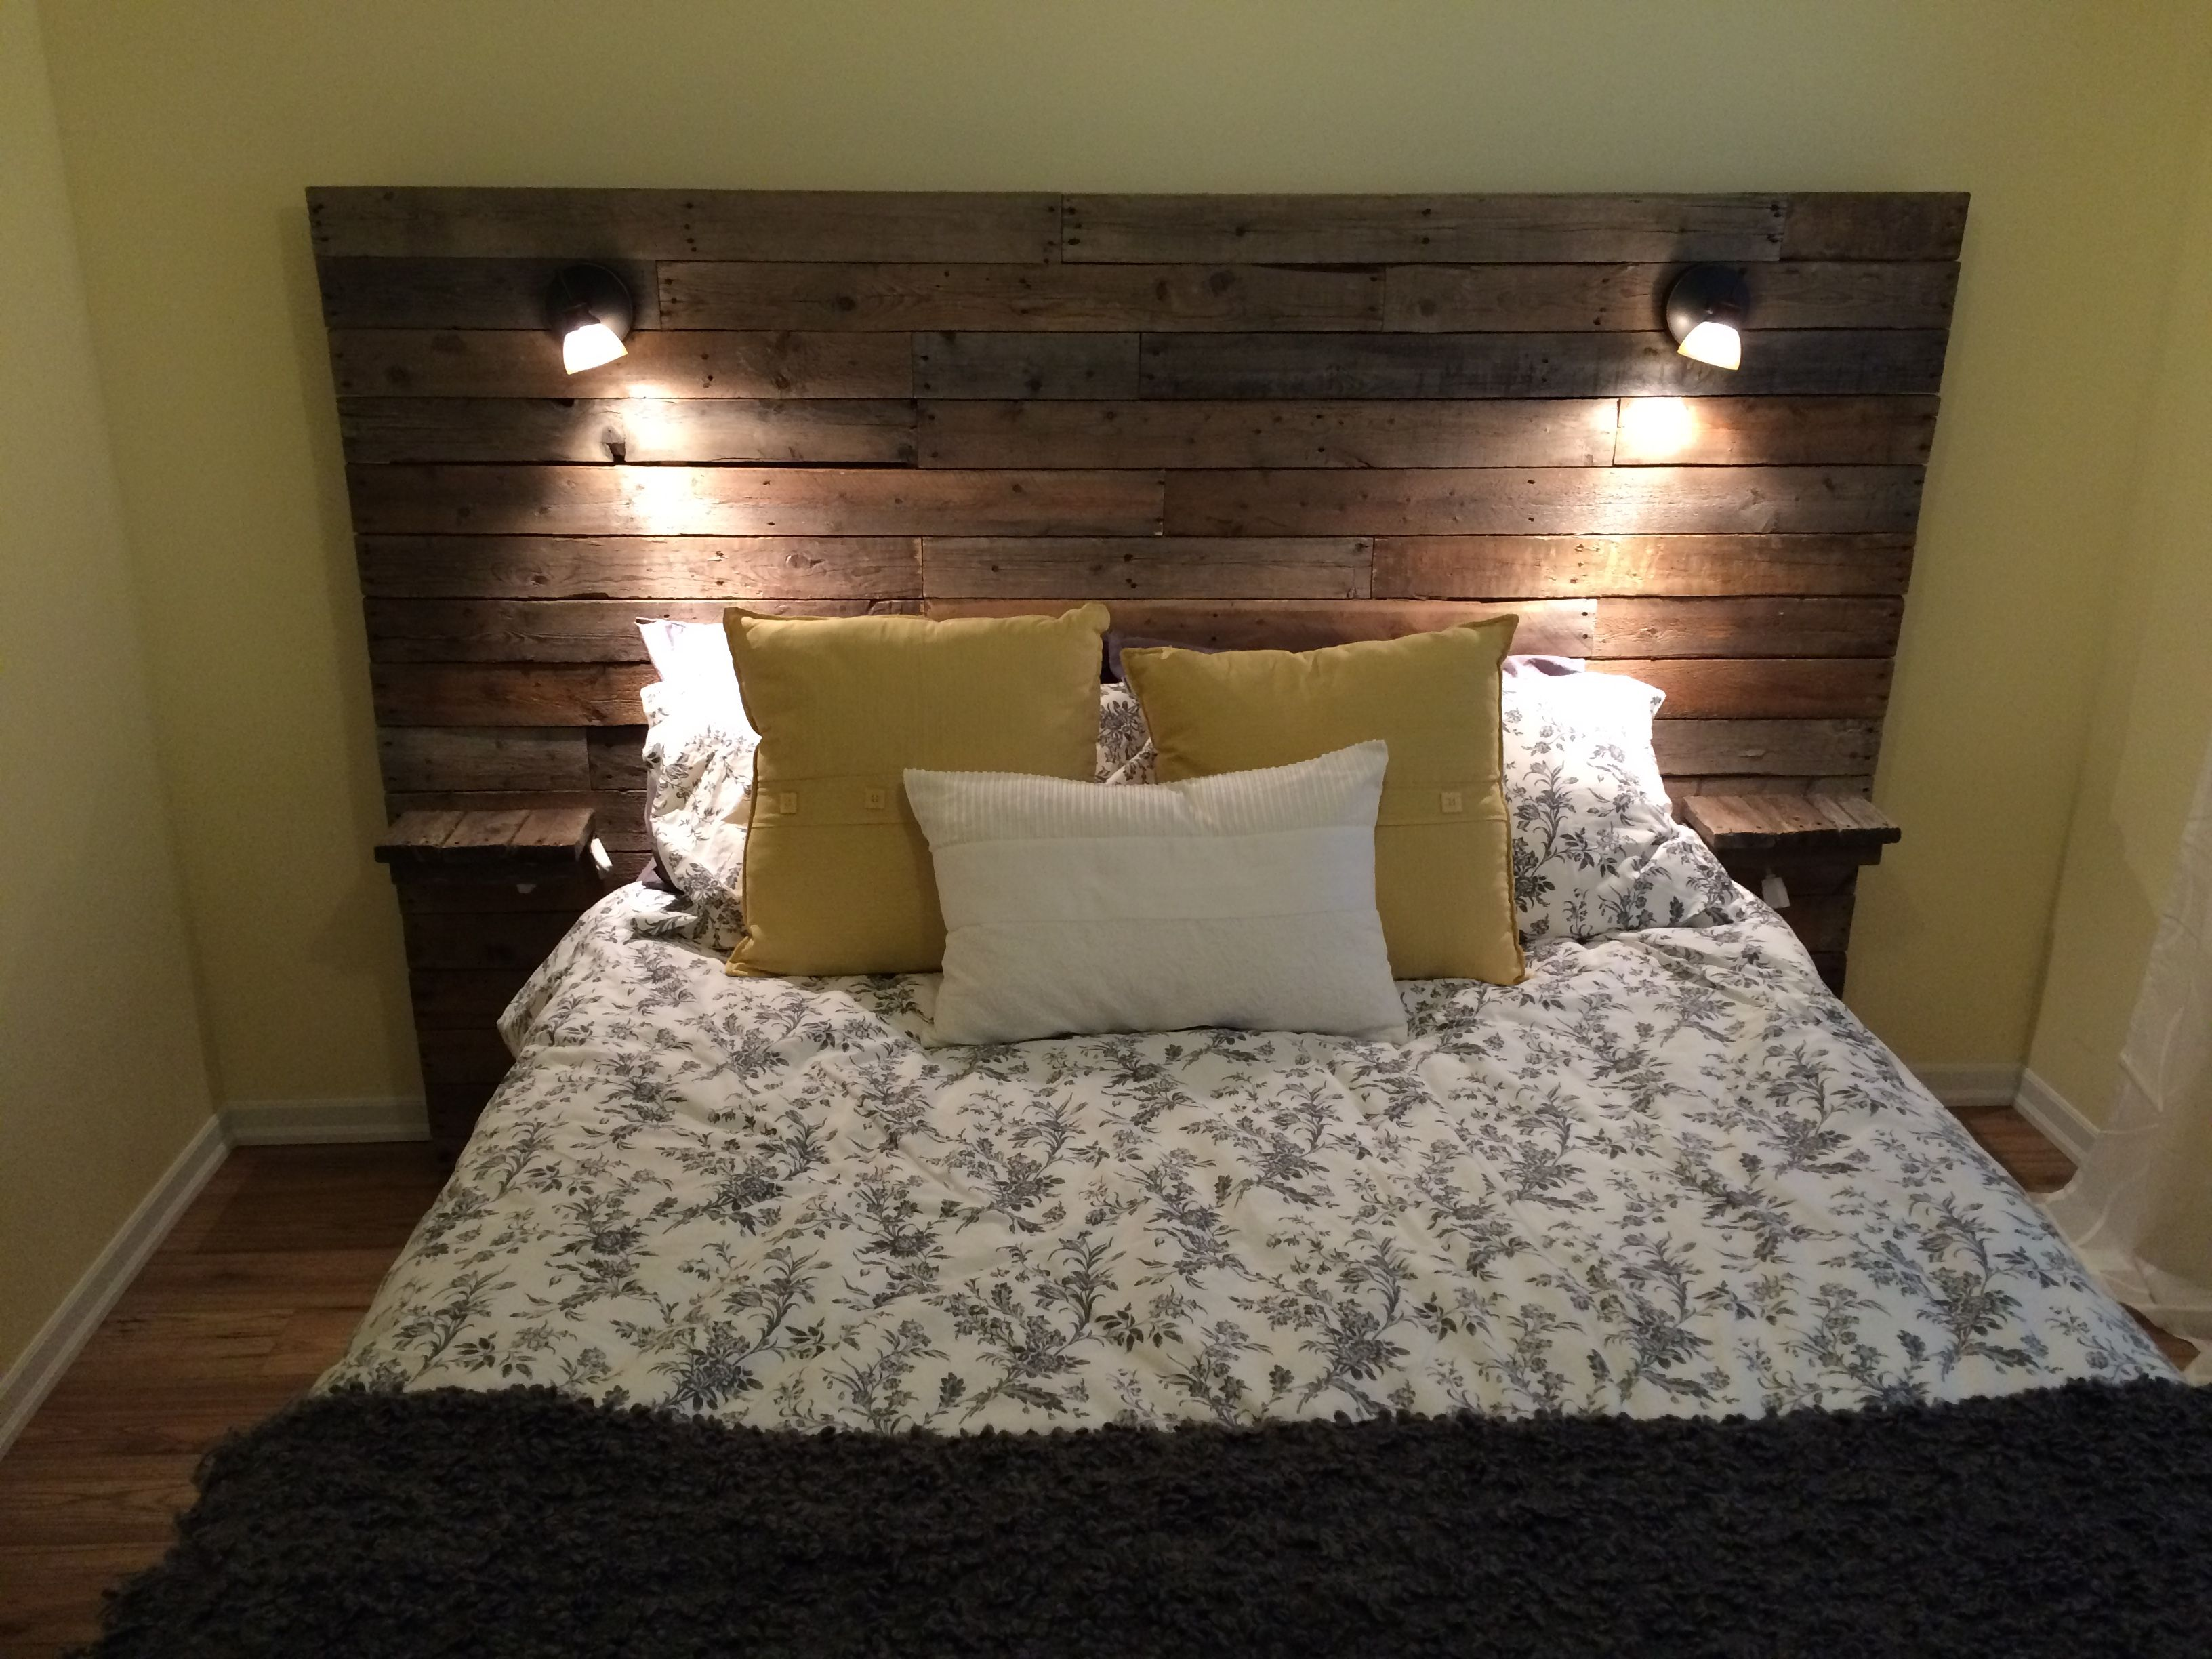 Pallet headboard with shelf lights and plugs for cell for Queen headboard ideas